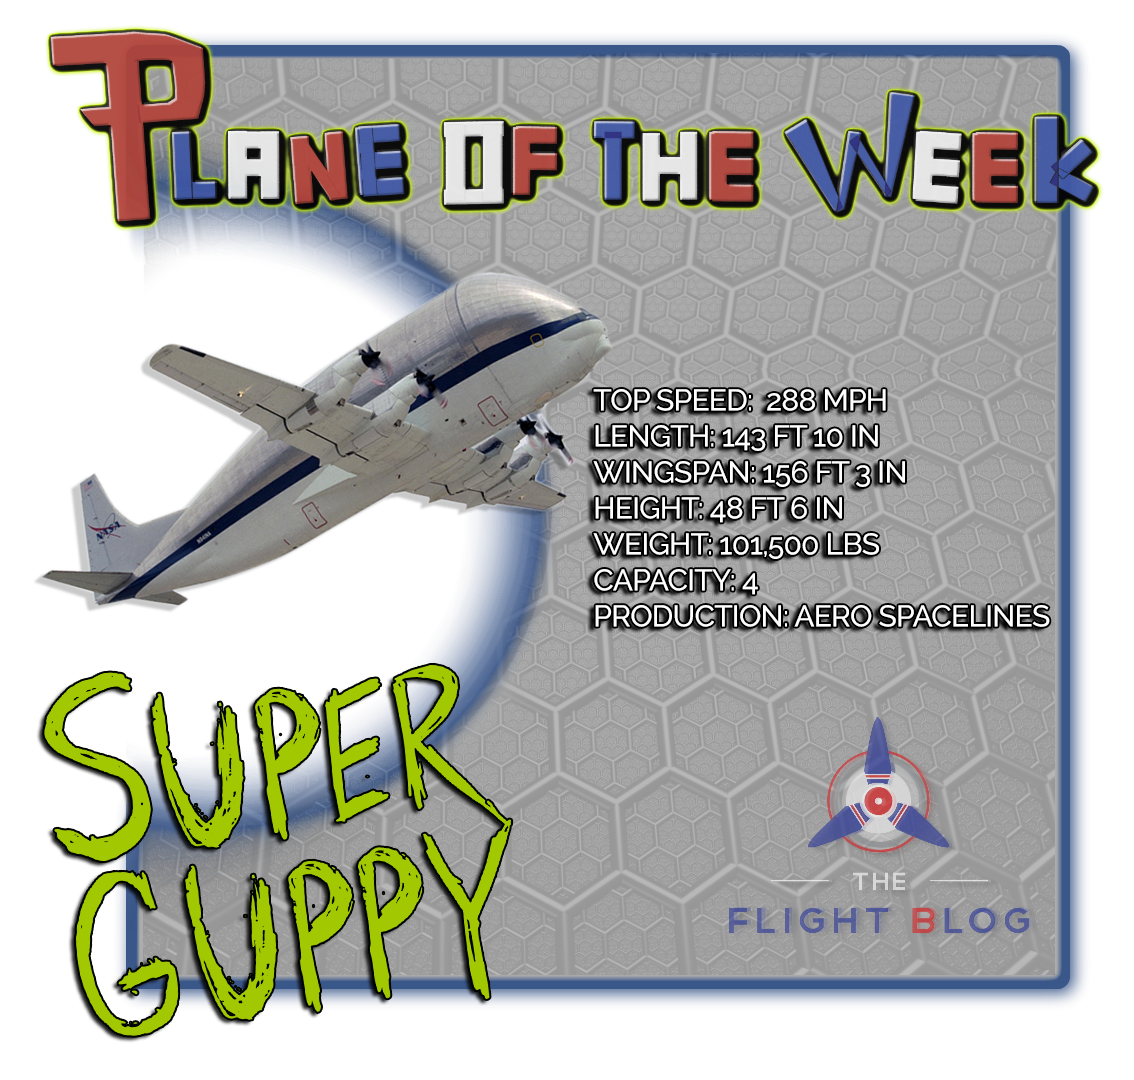 super guppy, NASA, super guppy turbine, plane of the week, plane specs, super guppy specs, the flight blog, aviation oil outlet, aero spacelines super guppy, NASA super guppy